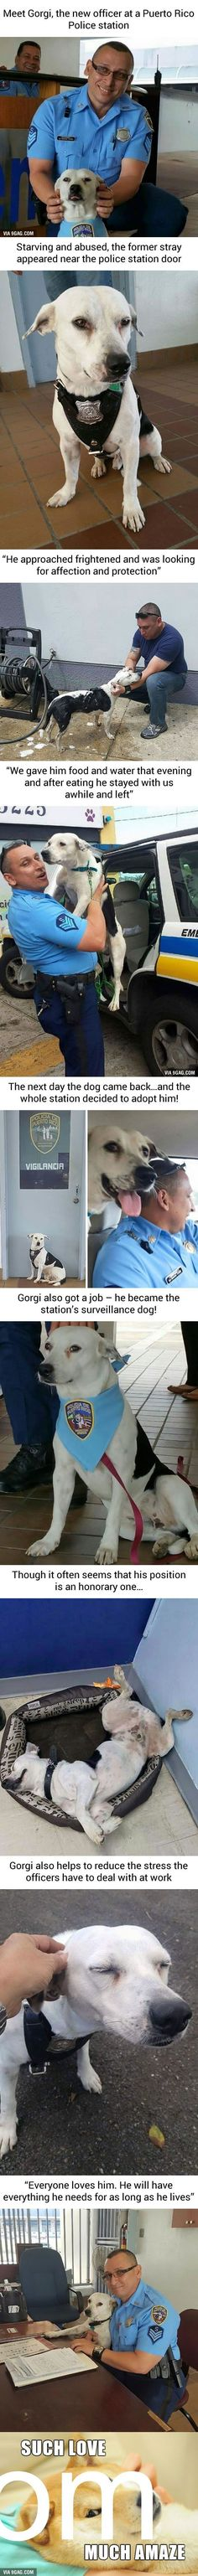 Click LIKE if you Love Dogs #PaleoPets Stray Dog Walks Into Police Station, Gets A Job - 9GAG http://9gag.com/gag/aW6zzWx?ref=mobile